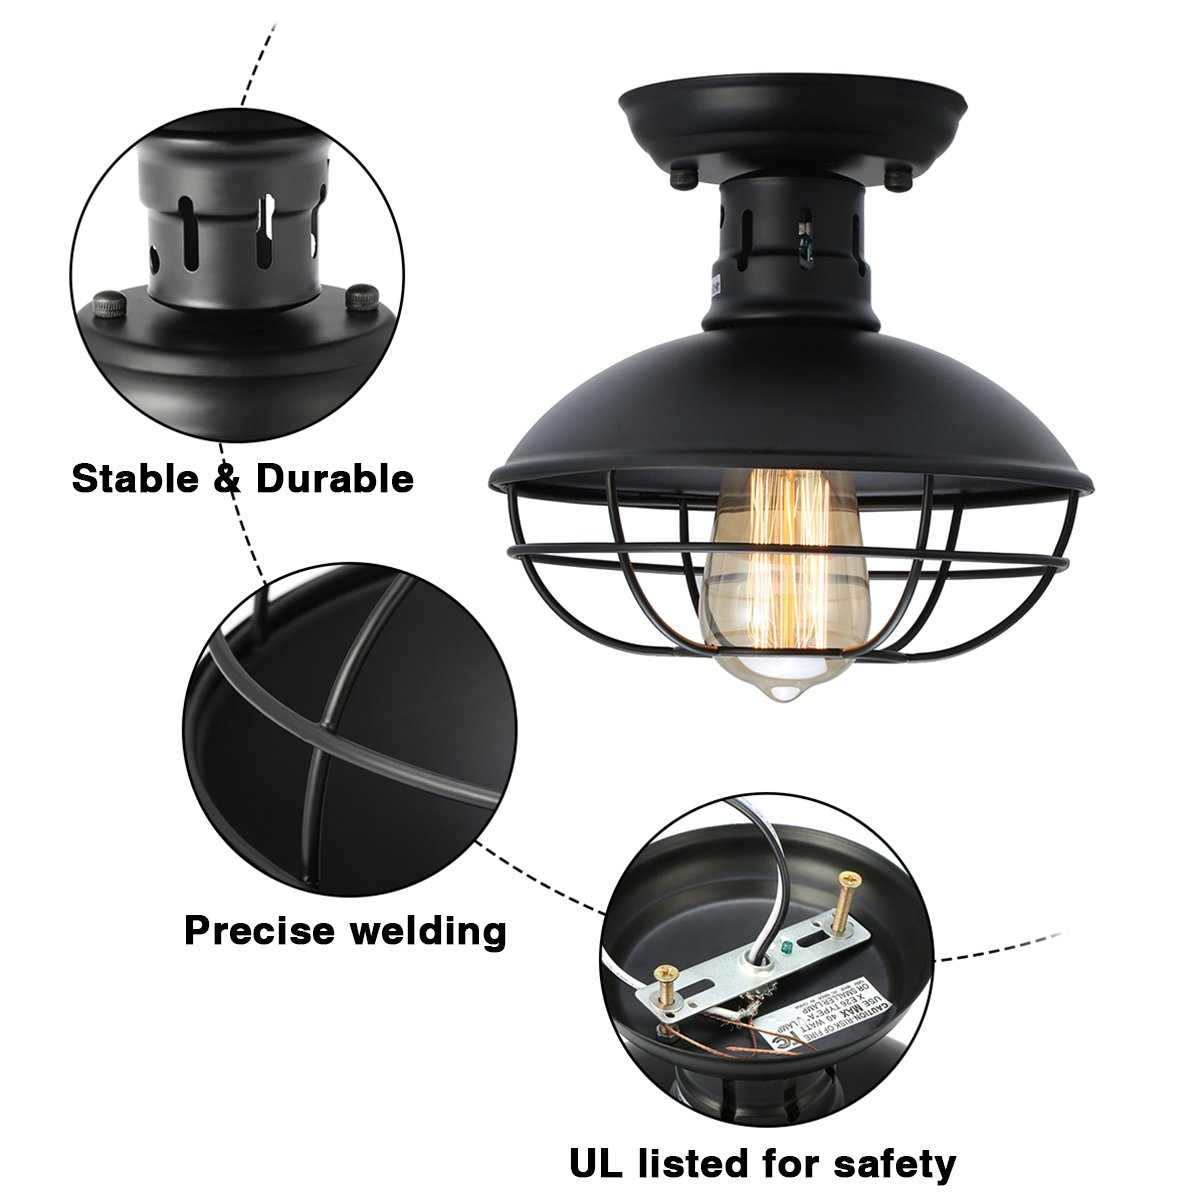 KingSo Industrial Metal Cage Ceiling Light, E26 Rustic Mini Semi Flush Mounted Pendant Lighting Dome/Bowl Shaped Lamp Fixture for Country Hallway Kitchen Garage Porch Bathroom by KINGSO (Image #5)